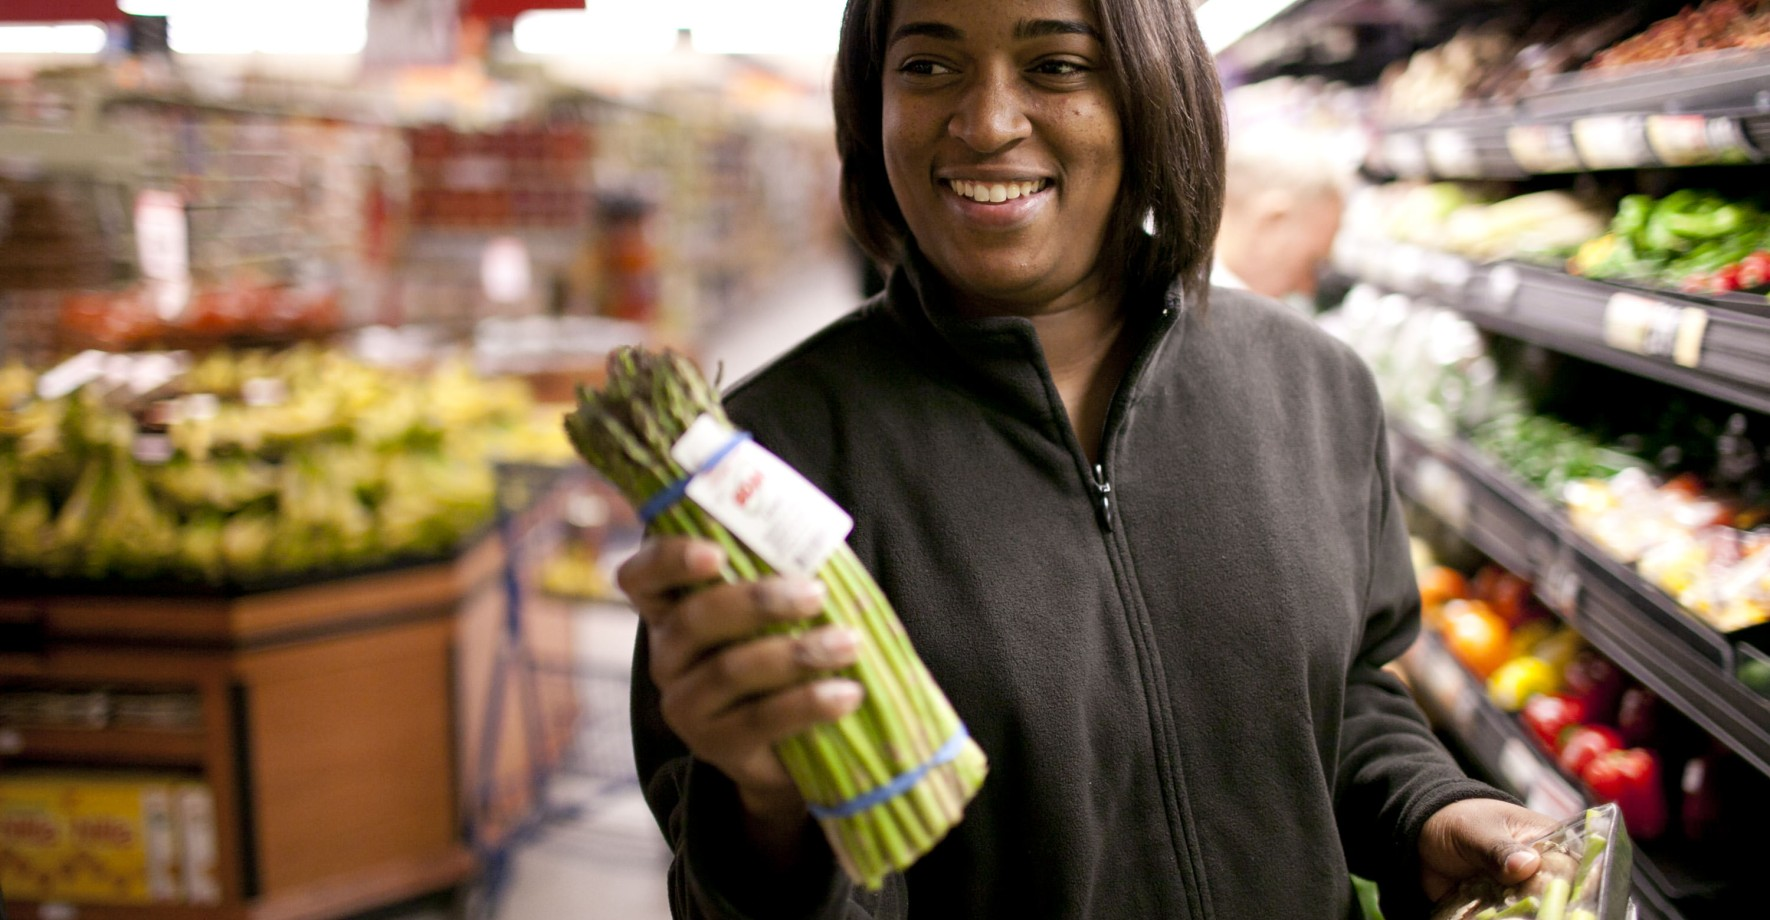 Woman holding asparagus bunch in grocery store